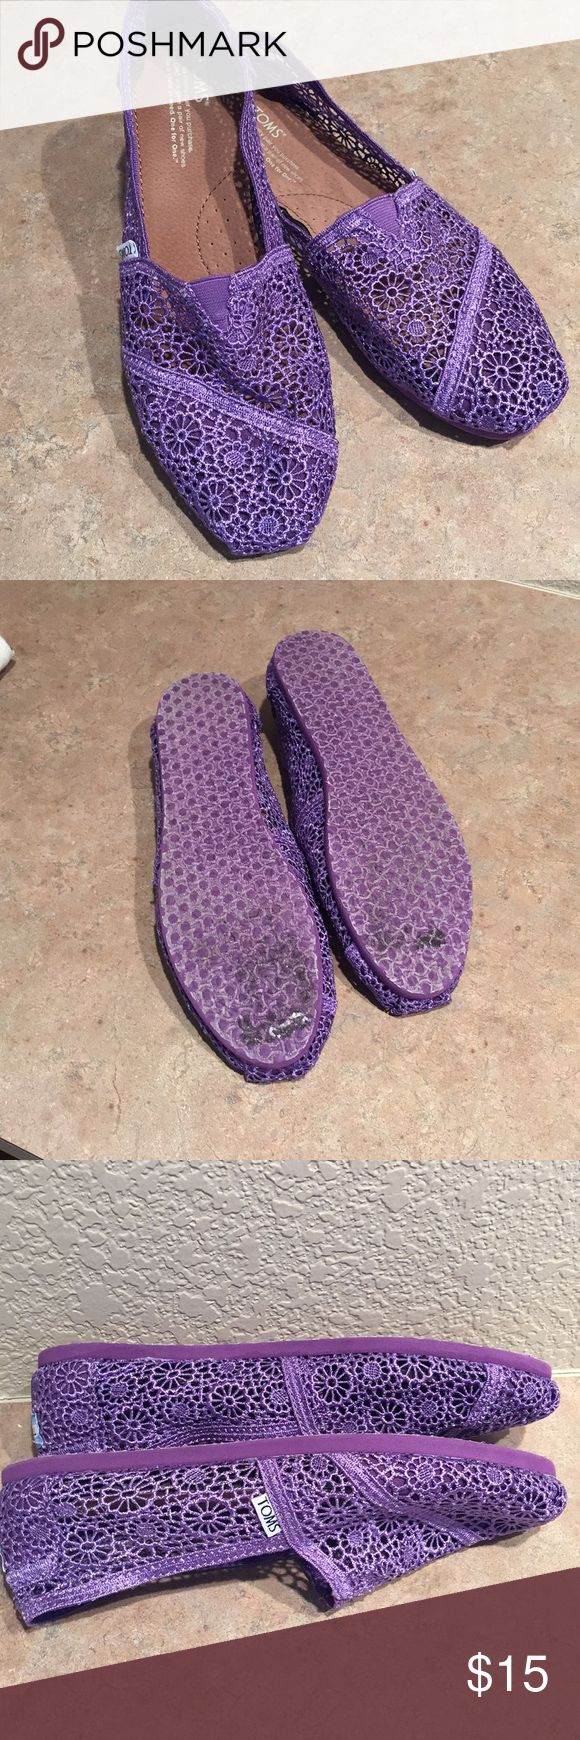 Purple lace Toms Freshly, delicately laundered.  Maybe worn 2x.  Have been sitting in my closet ☹️ Toms Shoes Flats & Loafers